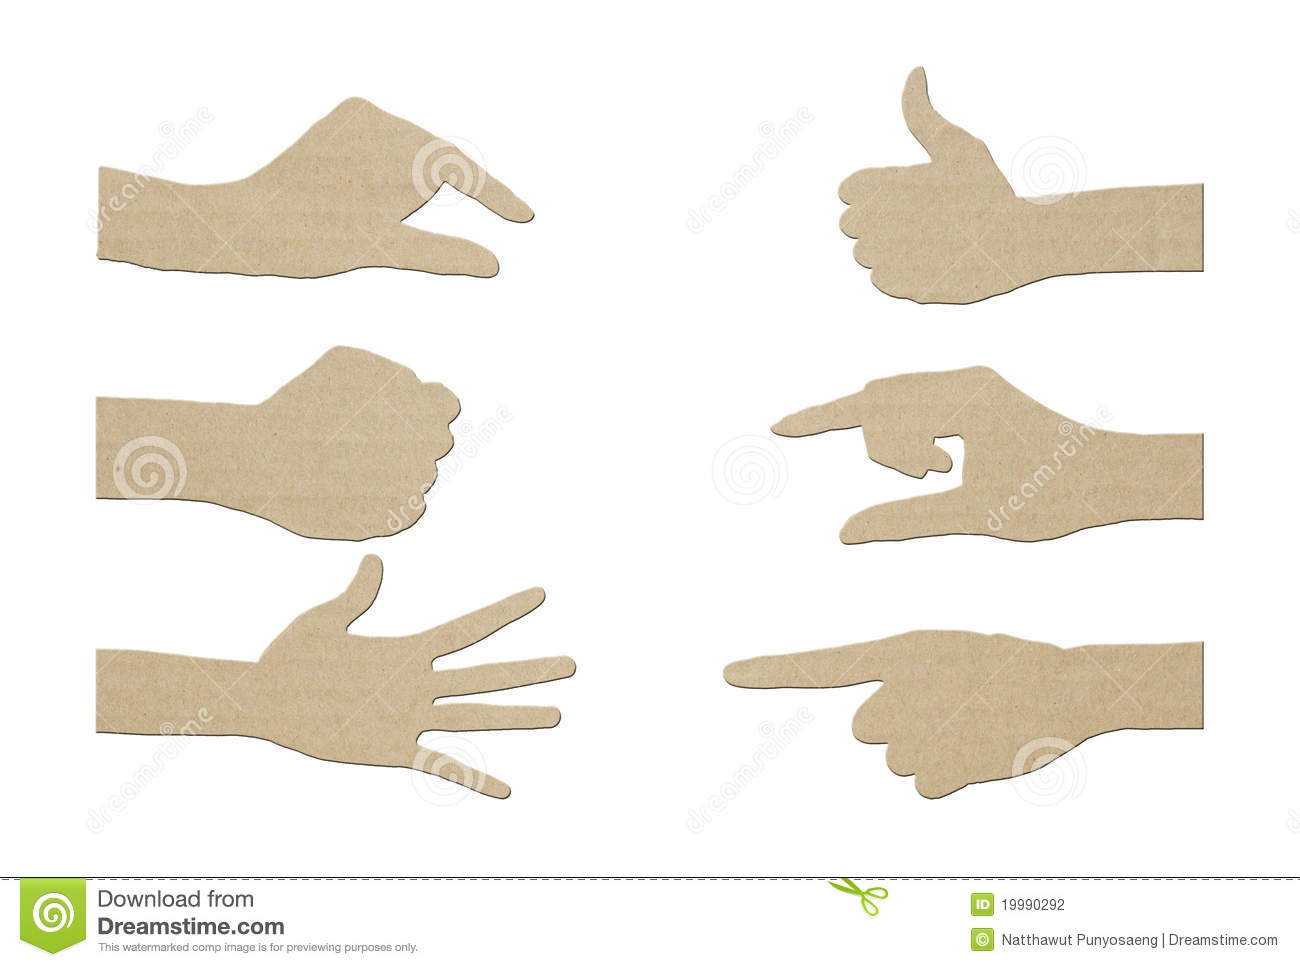 Body language and hand gestures